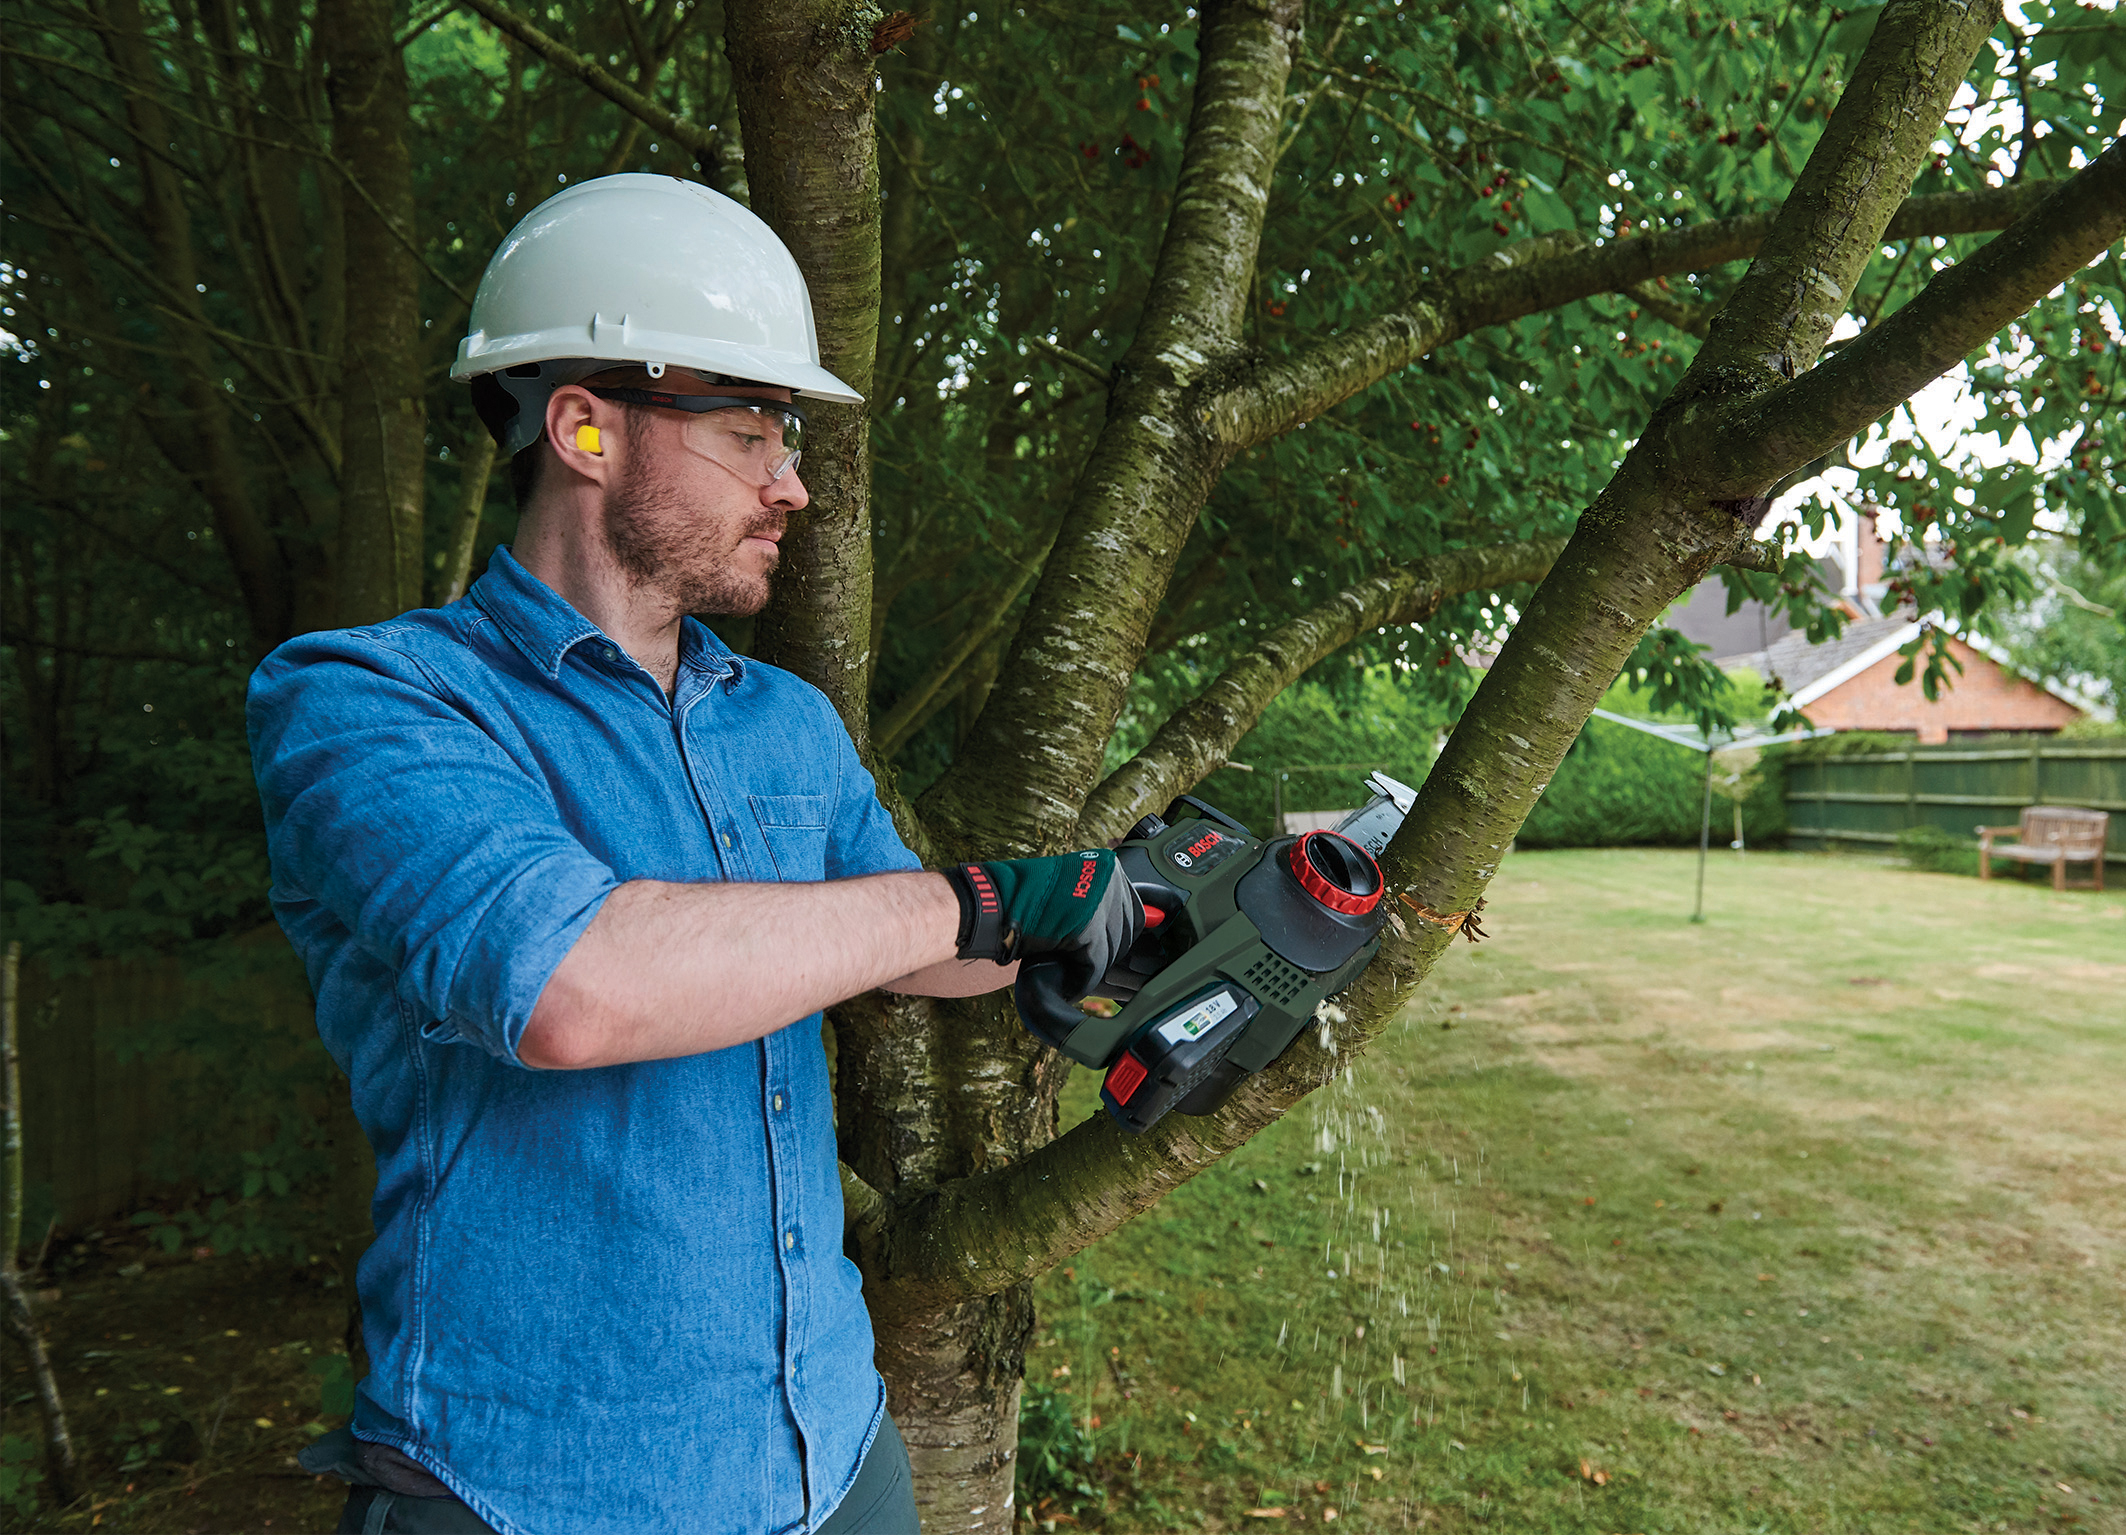 Saw with particular comfort and control: Convenient 18 volt chainsaw from Bosch